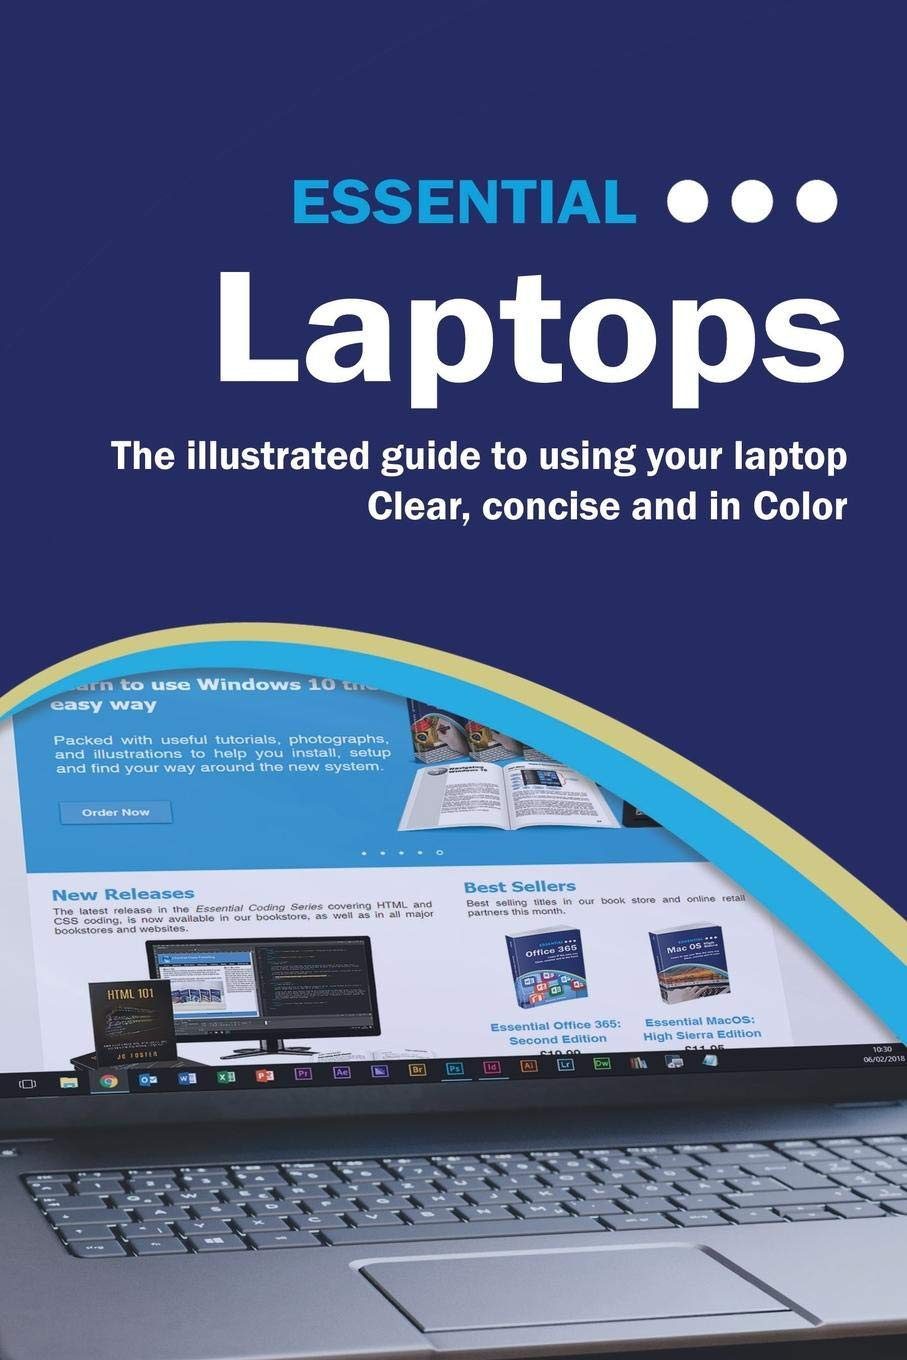 Essential Laptops: The Illustrated Guide to Using your